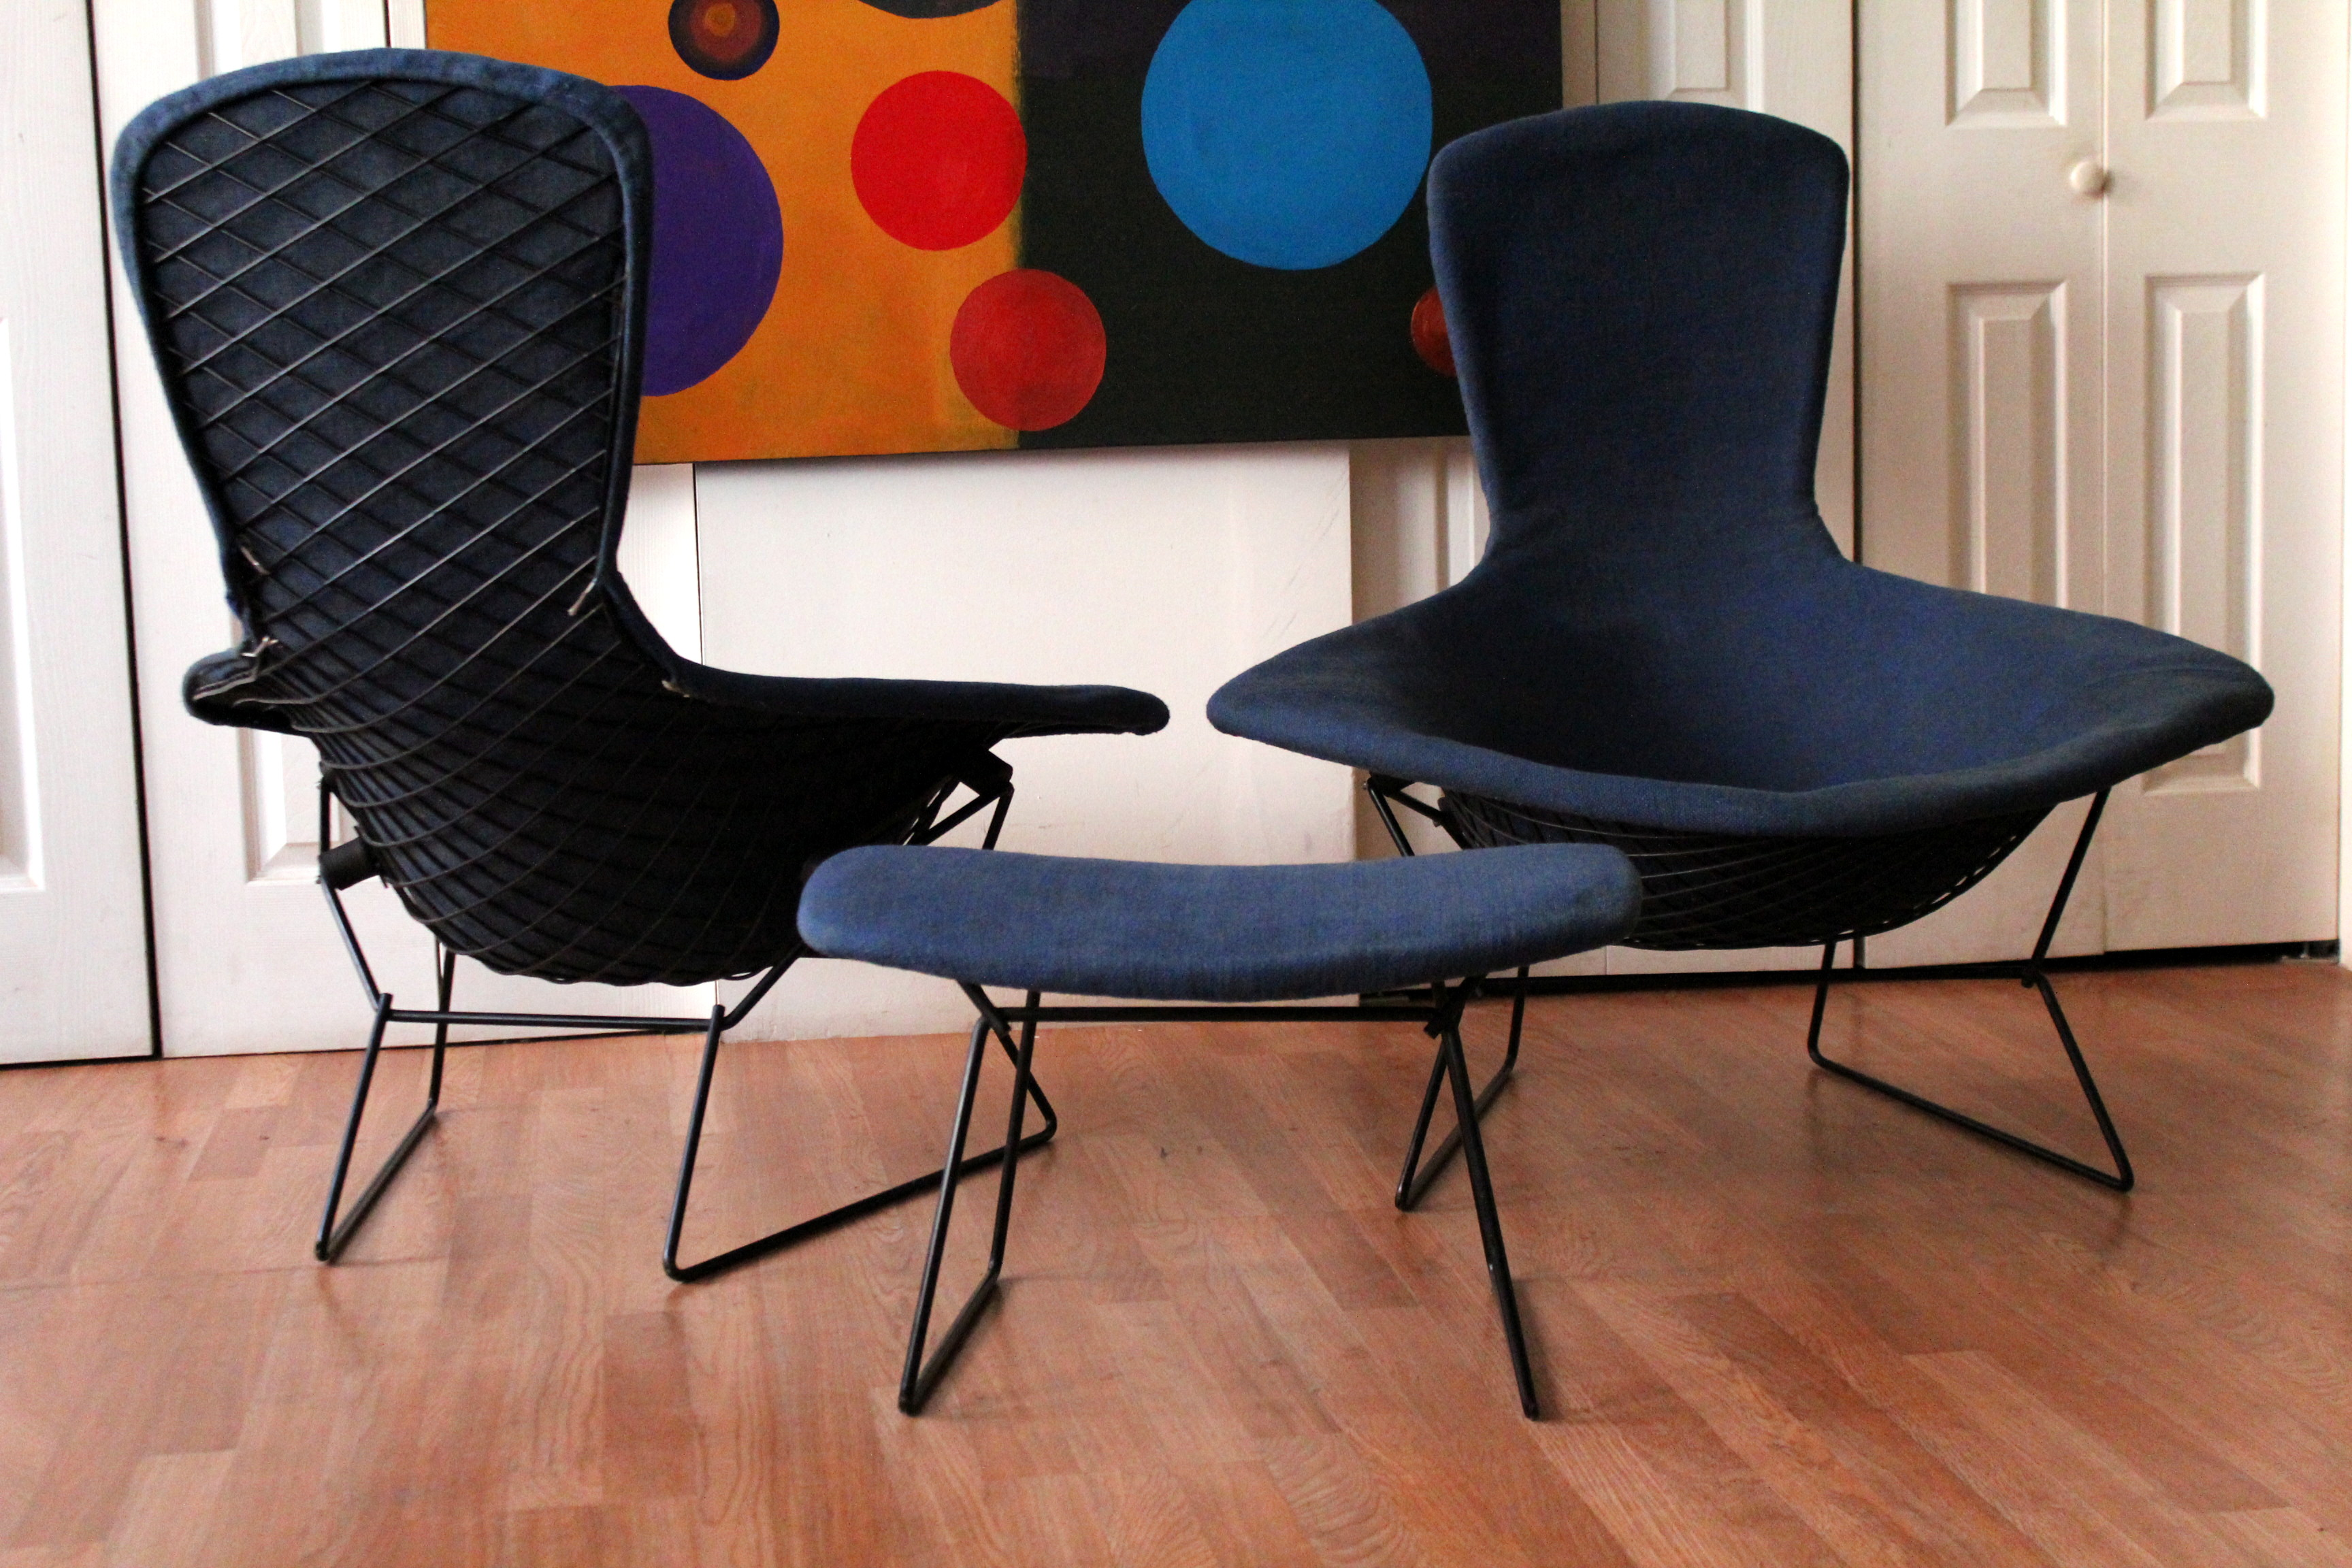 Authentic Vintage Harry Bertoia Knoll Bird Chairs and Ottoman & Authentic Vintage Harry Bertoia Knoll Bird Chairs and Ottoman | An ...